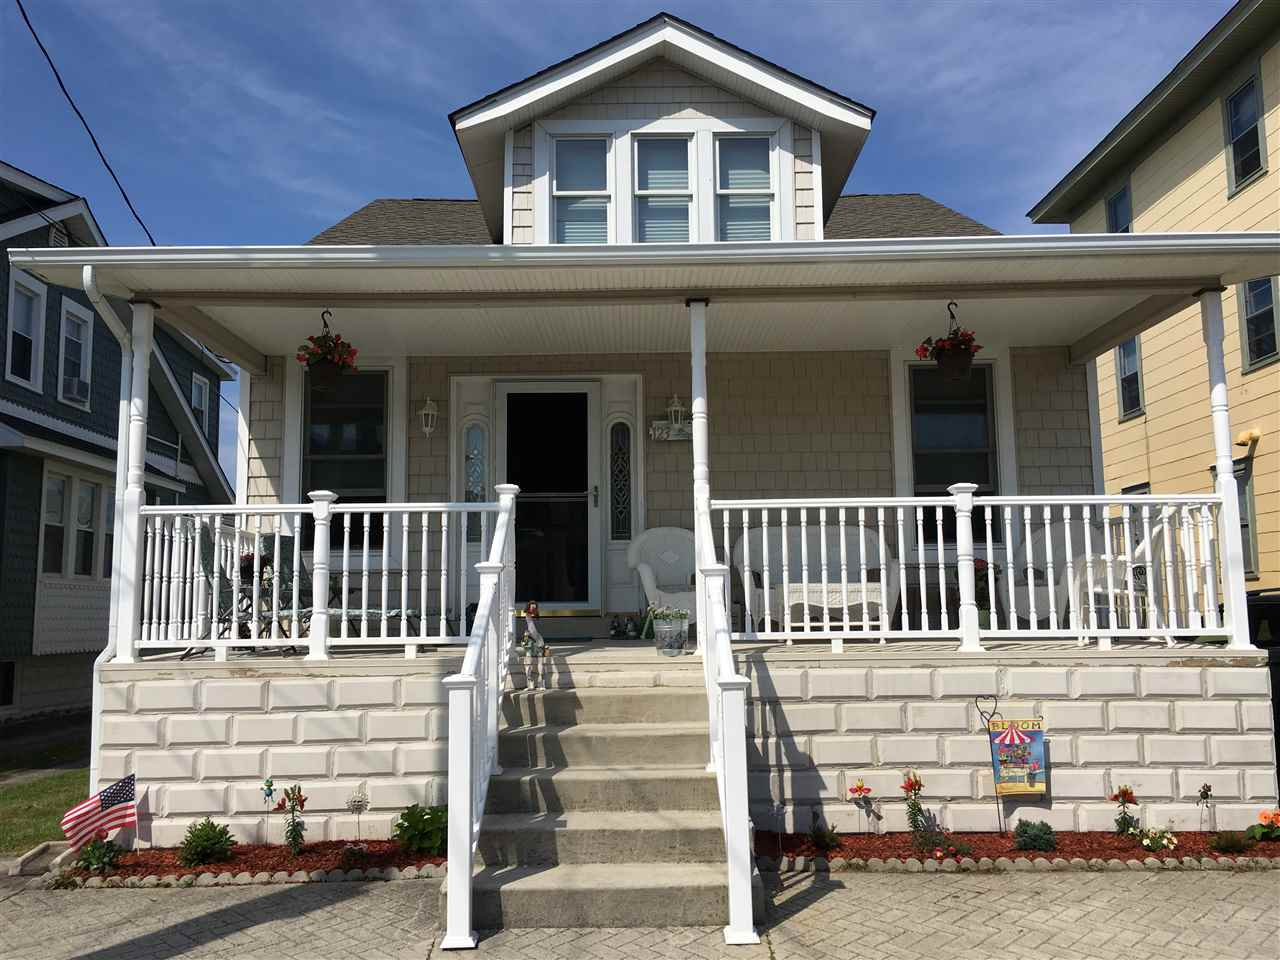 Additional photo for property listing at 123 E. Hildreth Avenue 123 E. Hildreth Avenue Wildwood, Nueva Jersey 08260 Estados Unidos